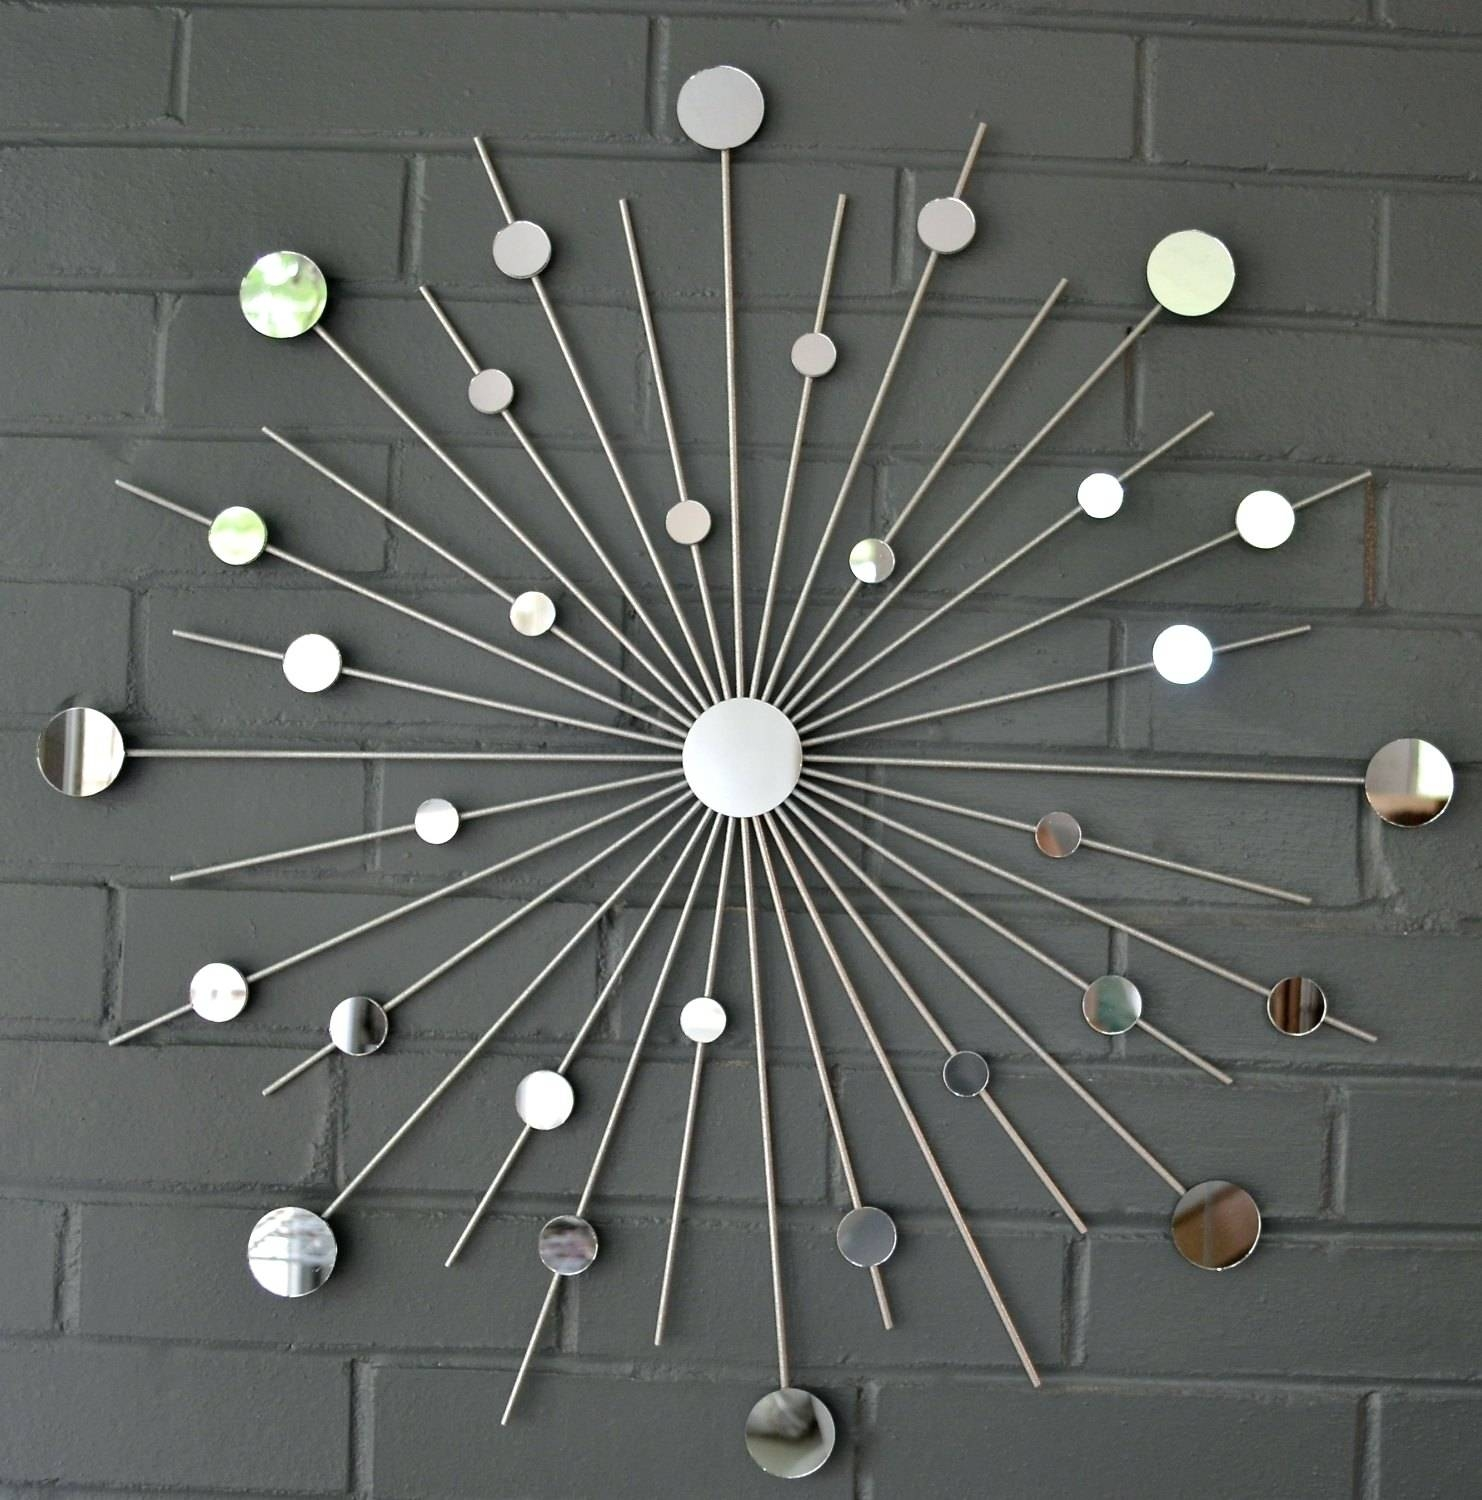 Wall Arts ~ Starburst Wall Art Sculpture Starburst Mixed Metal Intended For Most Recent Sunburst Metal Wall Art (View 20 of 20)